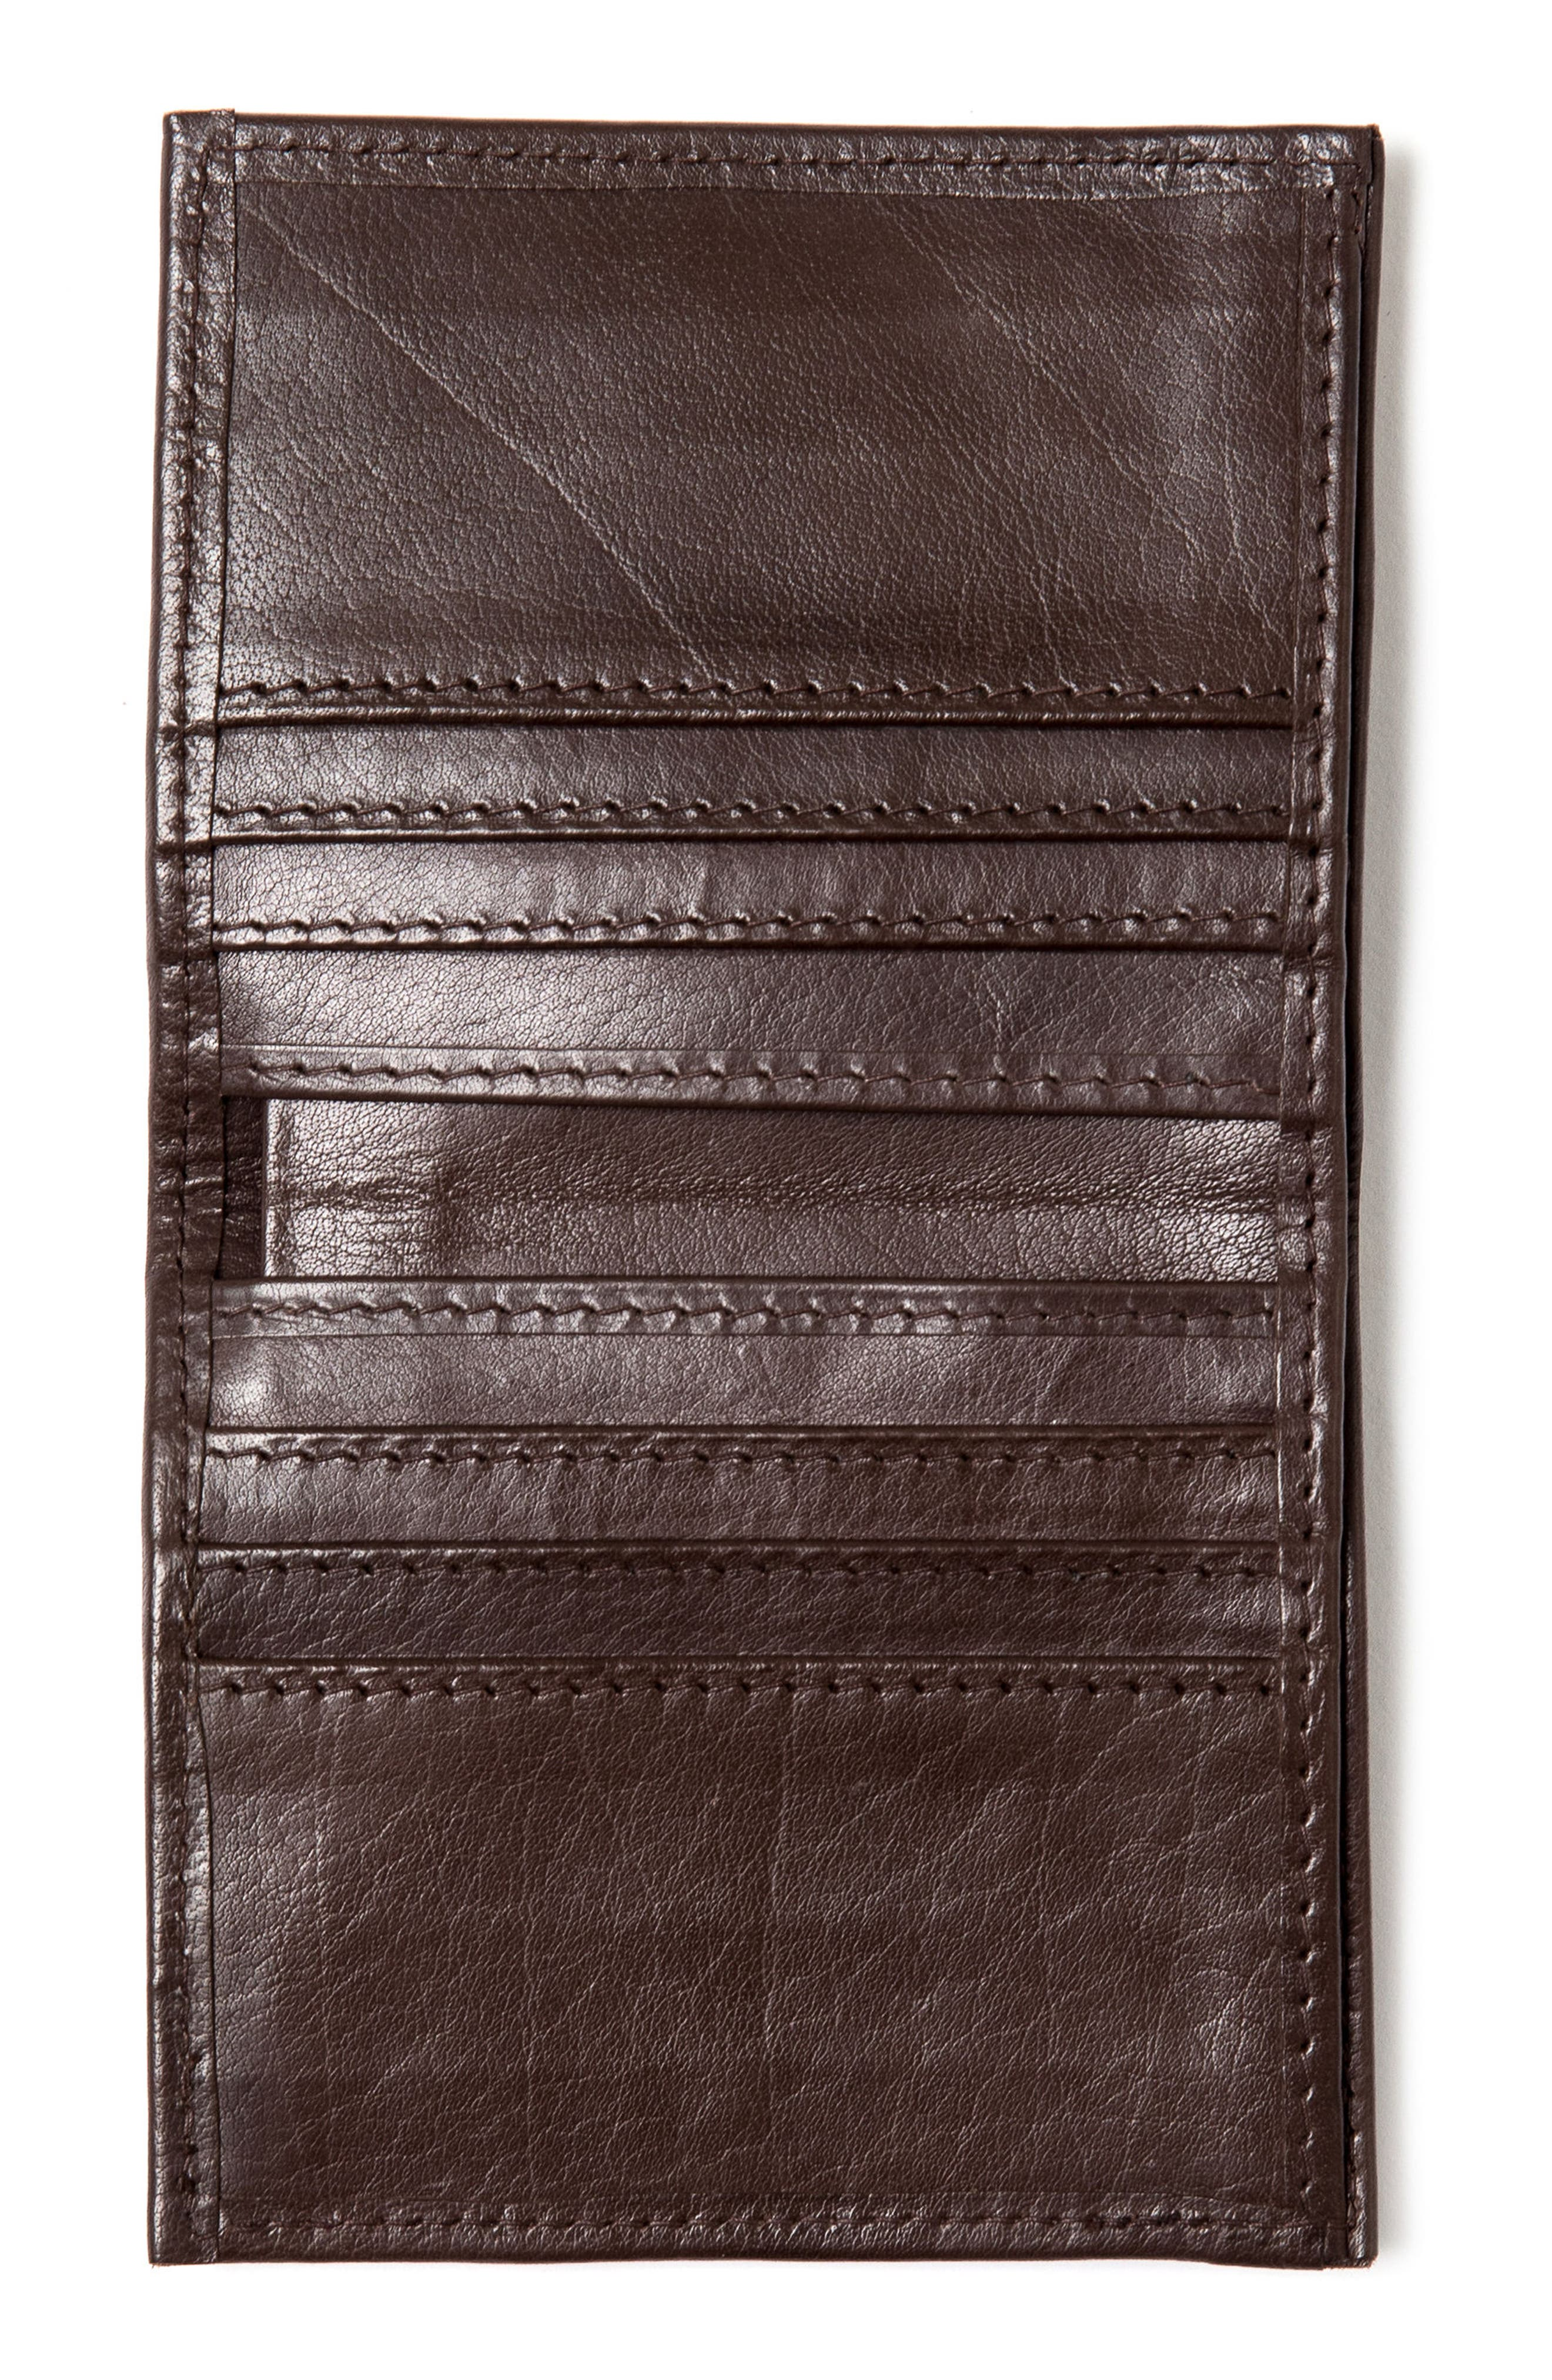 Four Mile Bay Leather Wallet,                             Alternate thumbnail 2, color,                             247